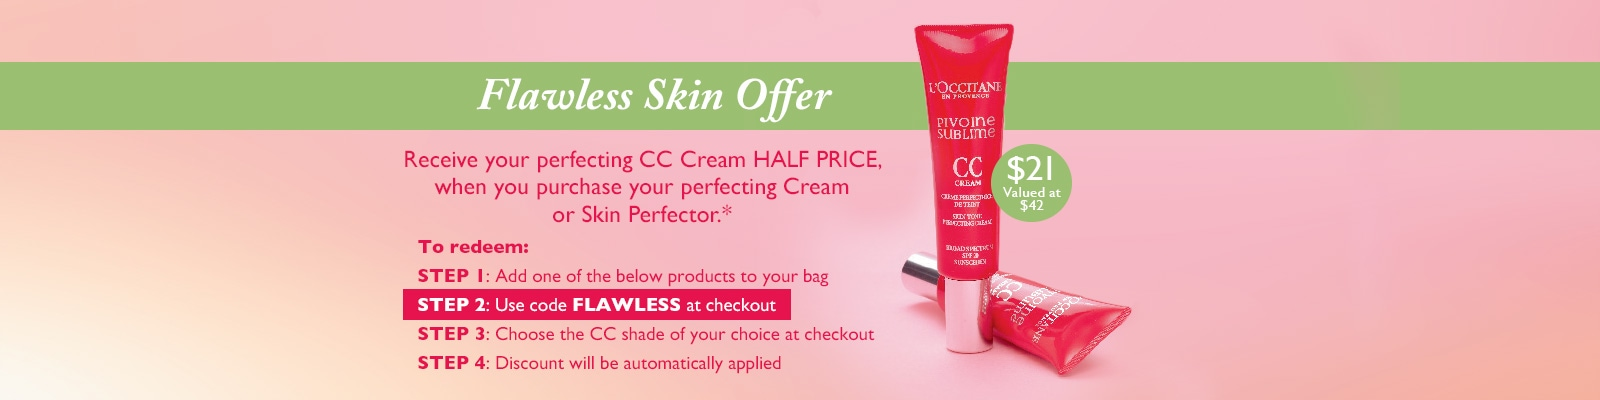 Flawless Skin offer